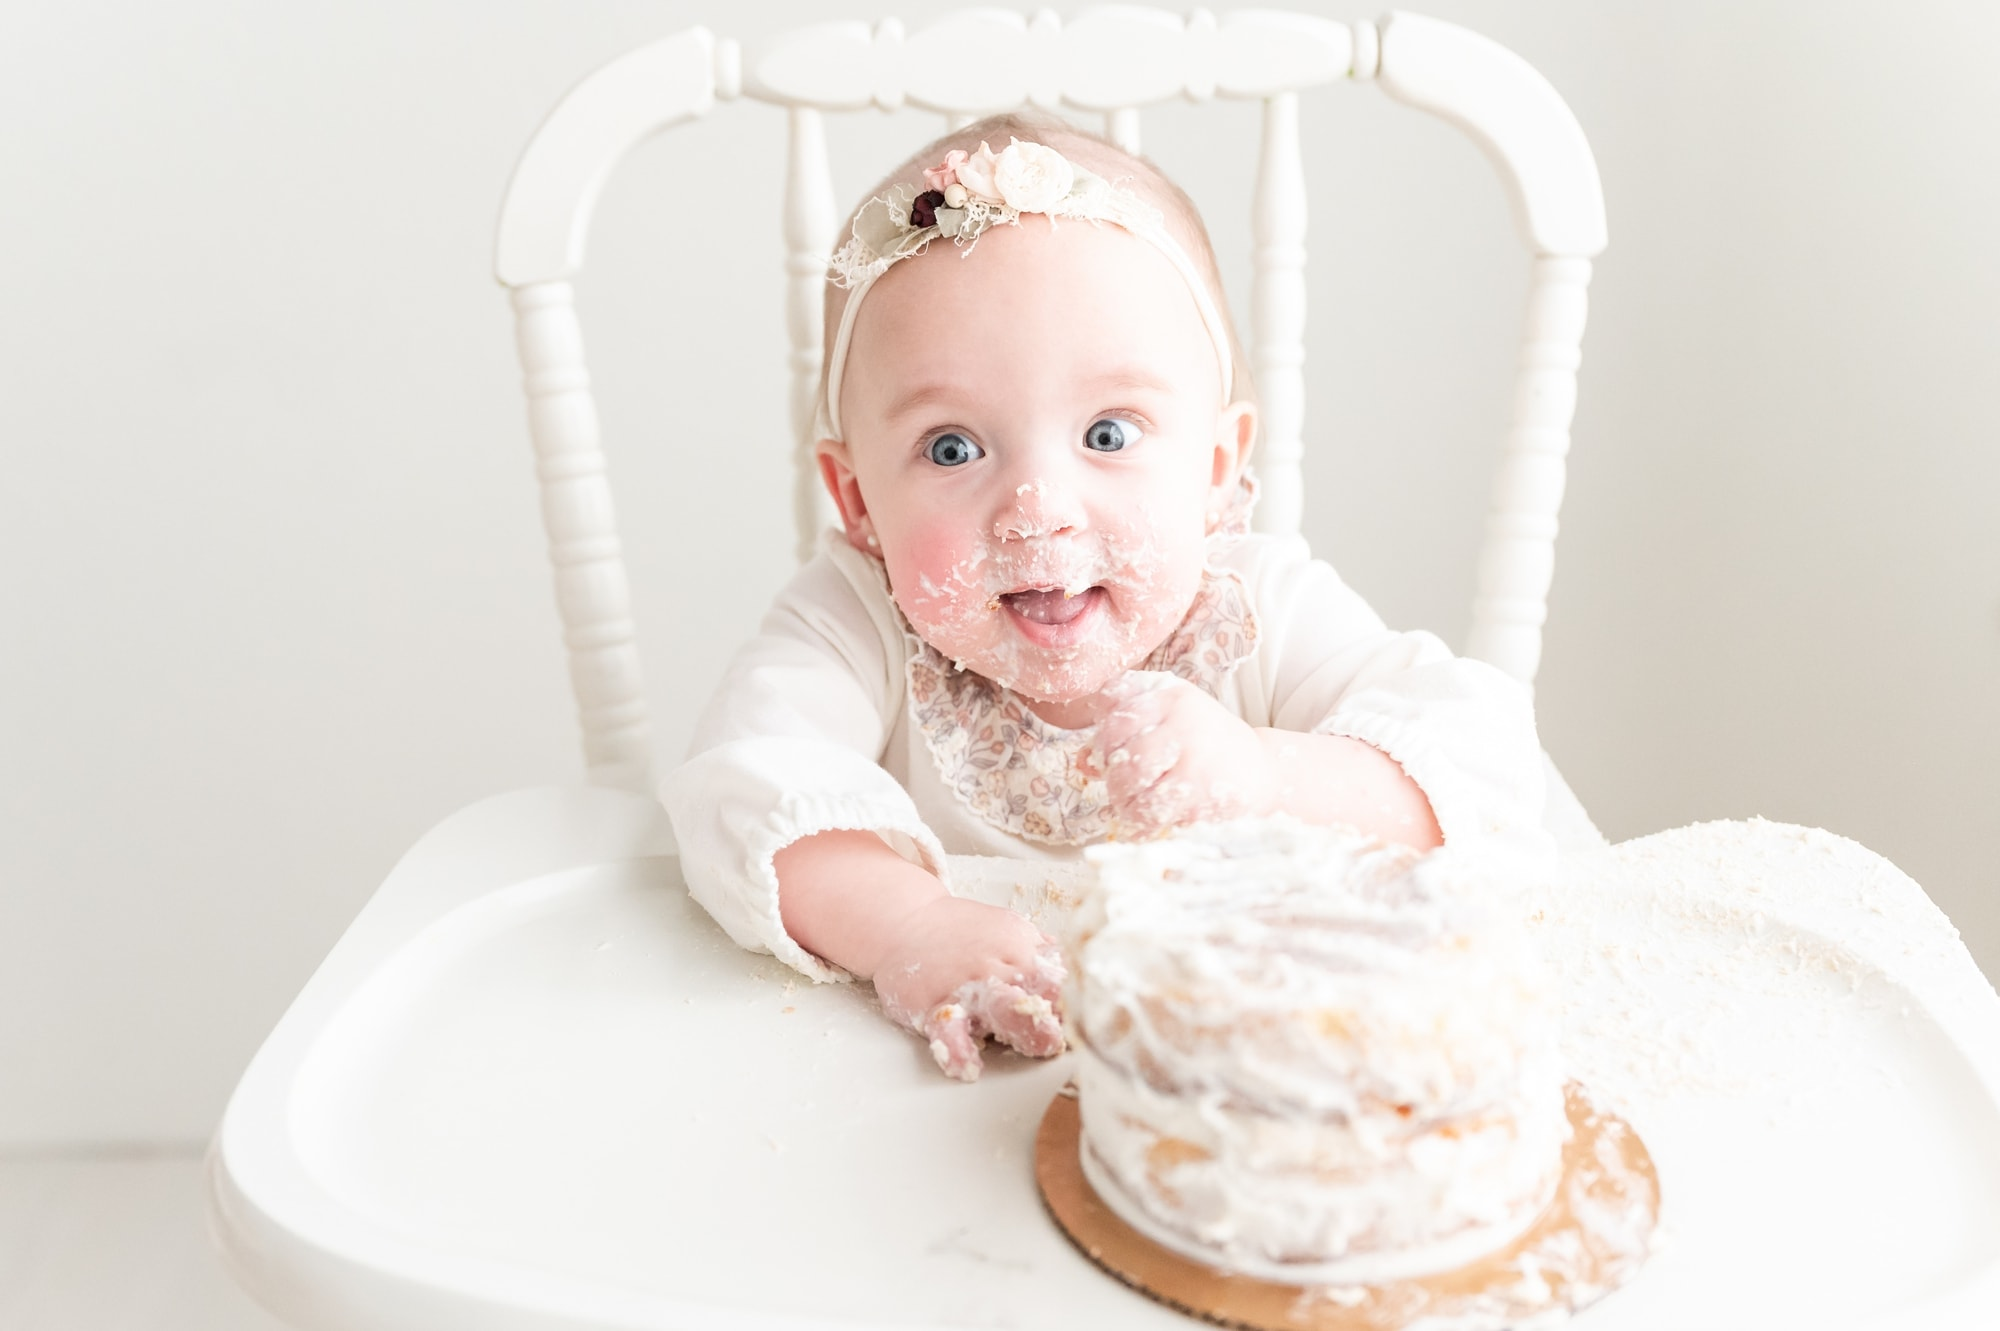 Smiling baby covered in frosting during one year milestone session by Aimee Hamilton Photography.